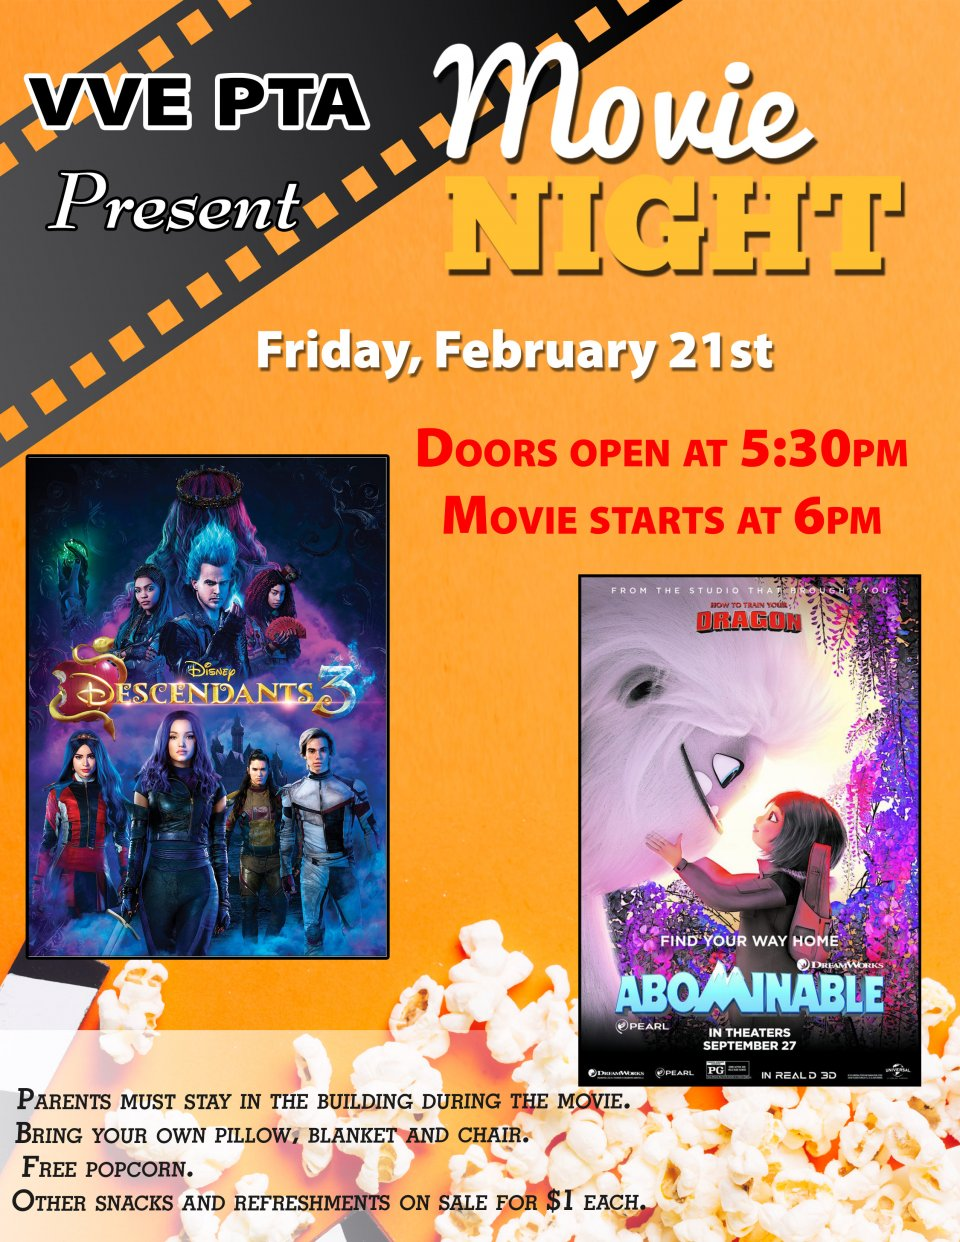 VVE PTA presents Movie Night, Friday, Feb. 21. Doors open at 5:30 p.m., movie starts at 6 p.m. Descendants 3 and Abominable. Parents must stay in the building during the movie. Bring your own pillow, blanket and chair. Free popcorn. Other snacks and refreshments on sale for $1 each.